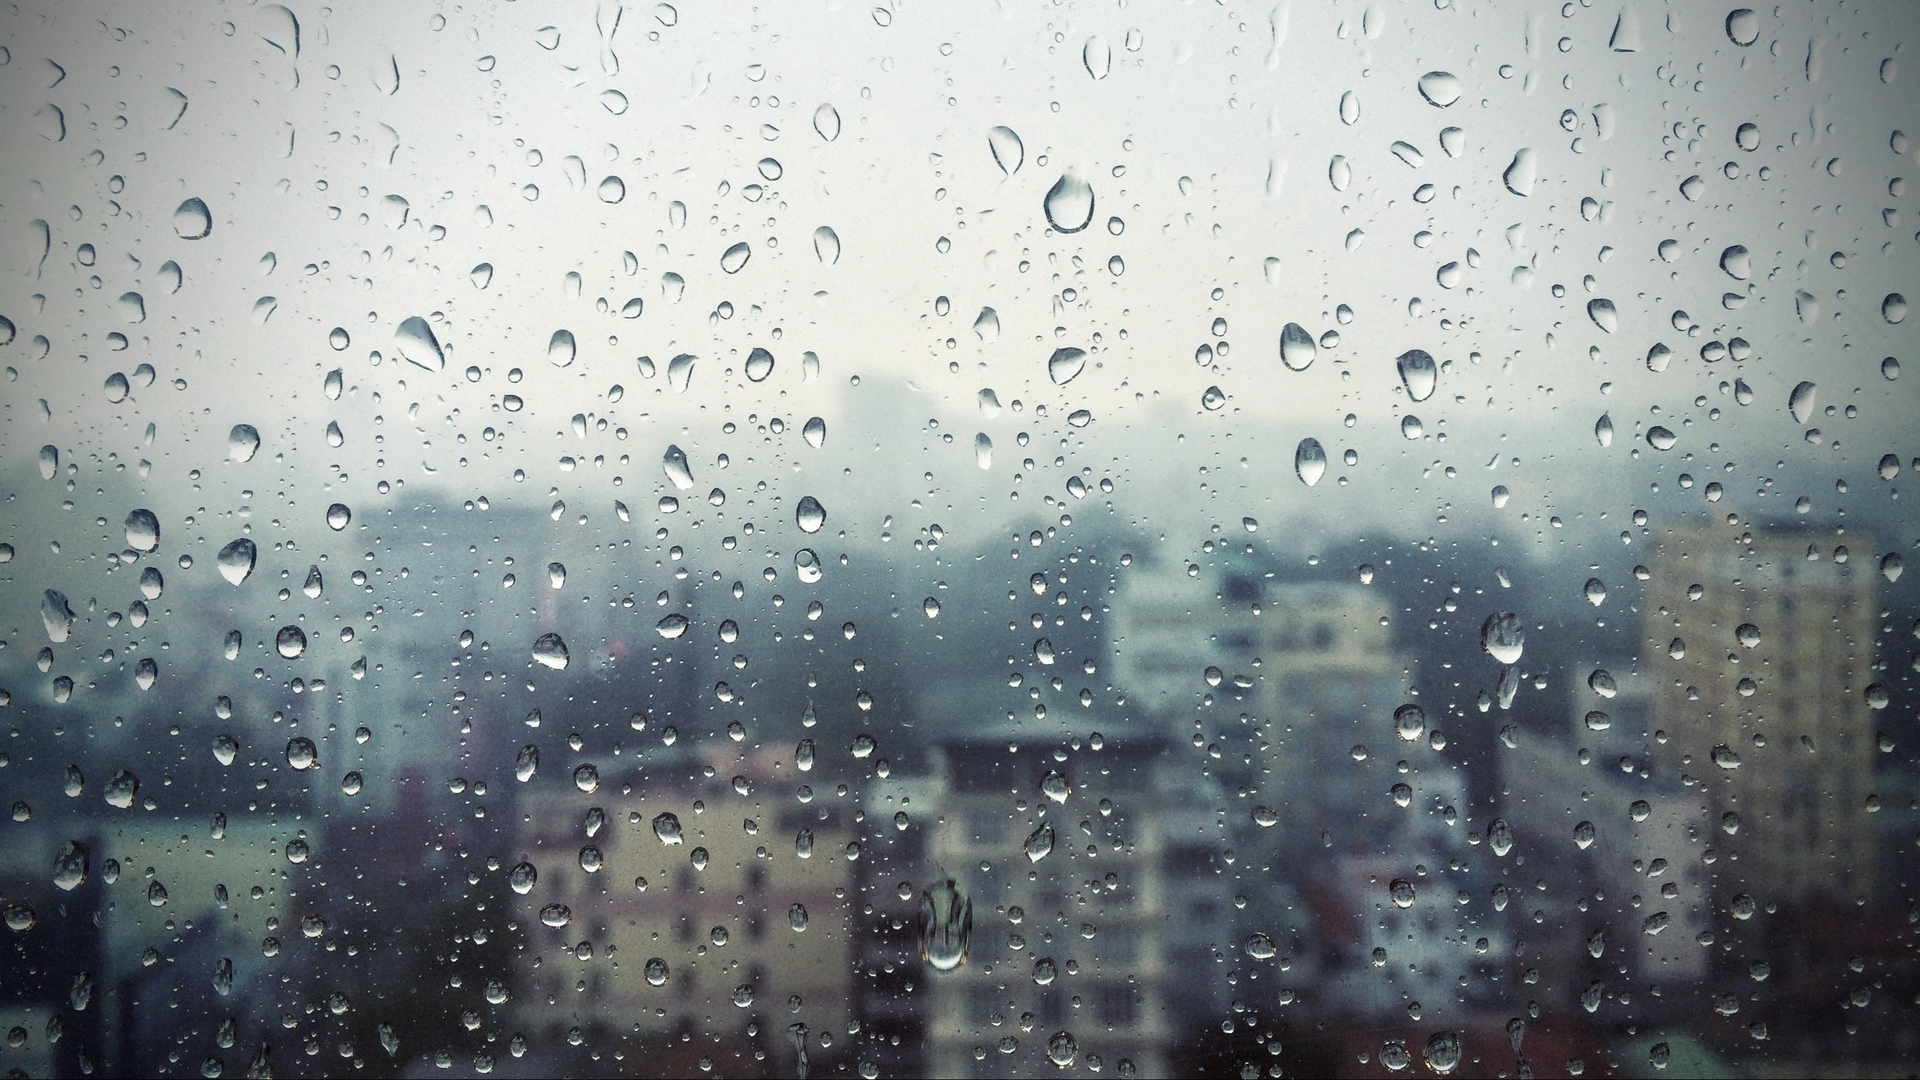 rain window glass buildings drops x